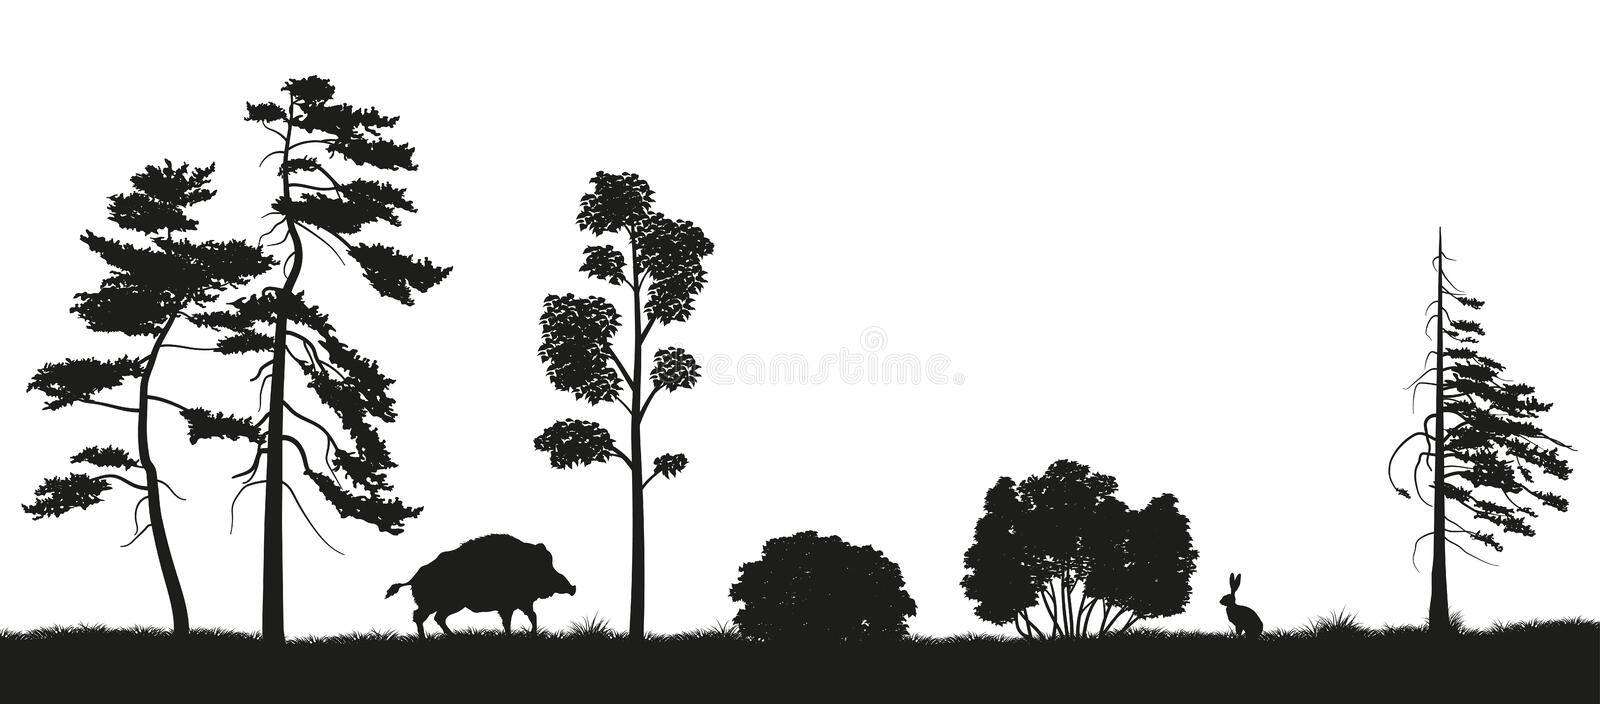 Black silhouette of forest trees on a white background. Panorama of forest with animals. Landscape of wild nature vector illustration